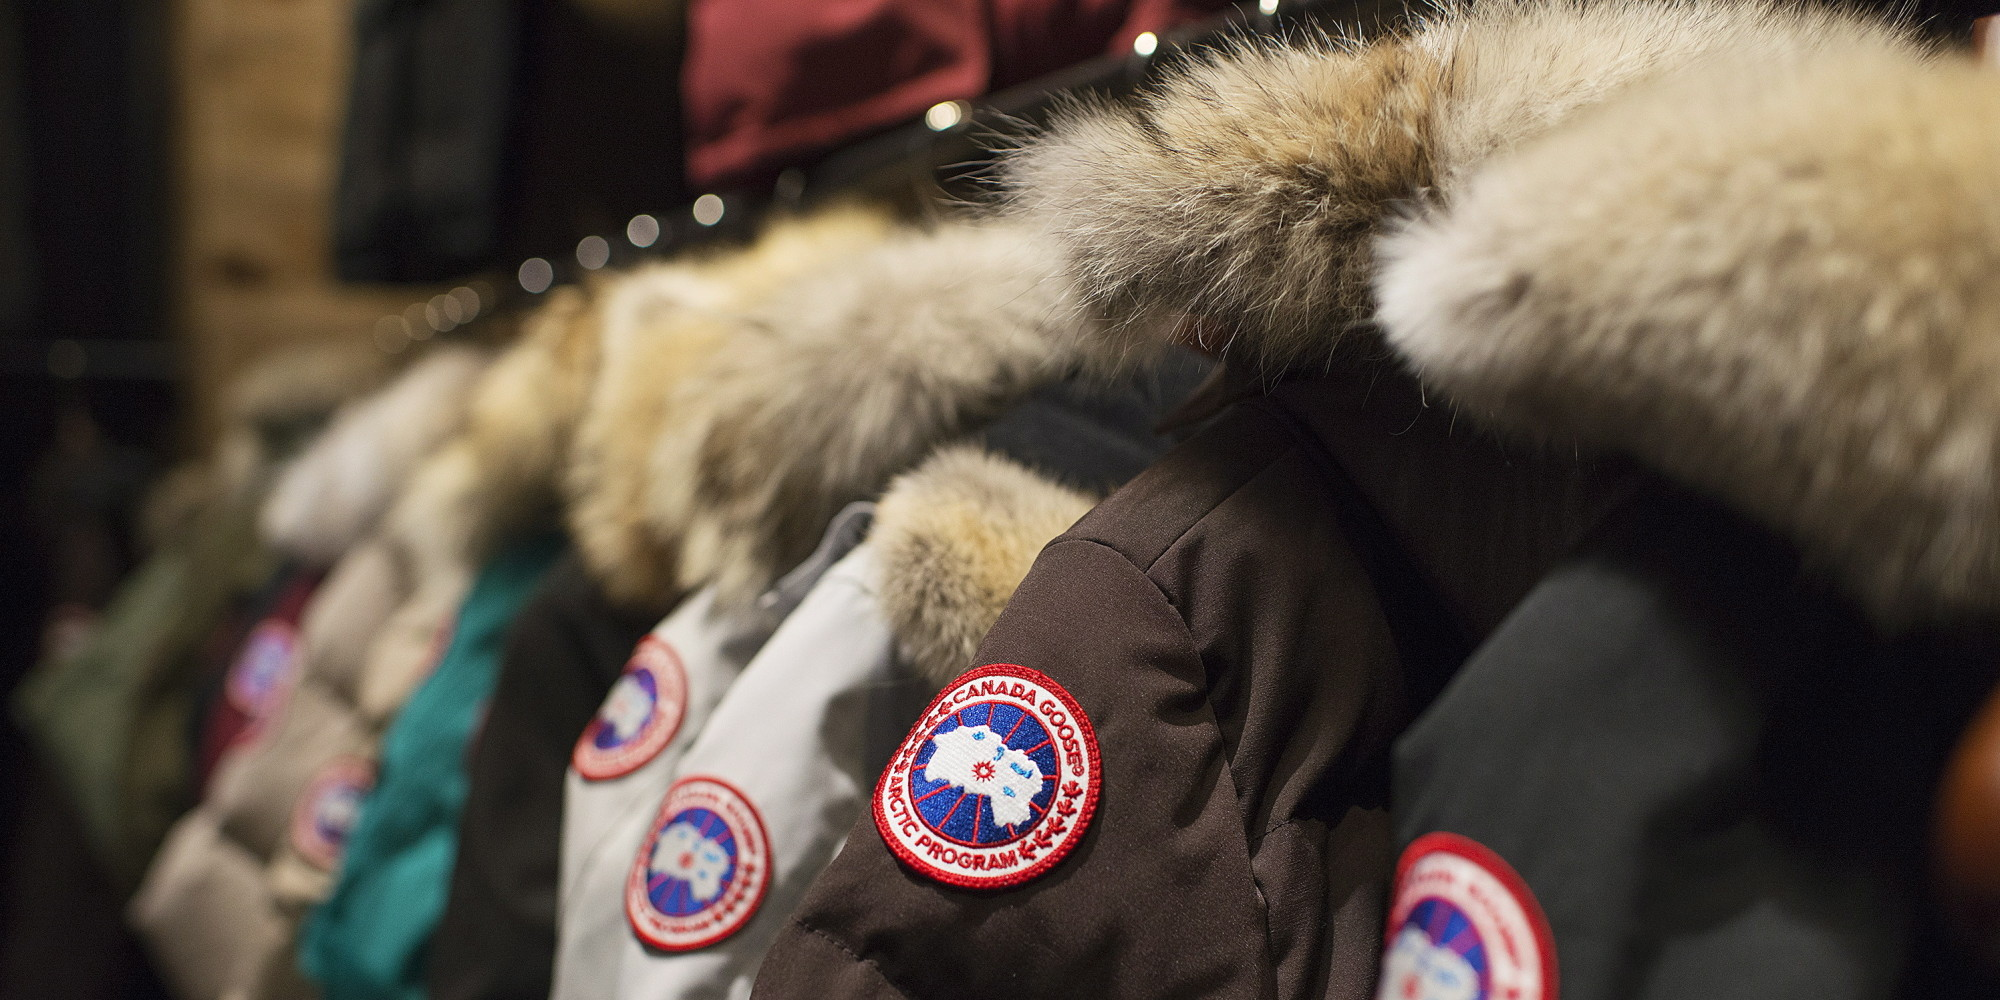 Canada Goose langford parka sale authentic - Canada Goose Sold To Bain Capital, Romney's Old Firm